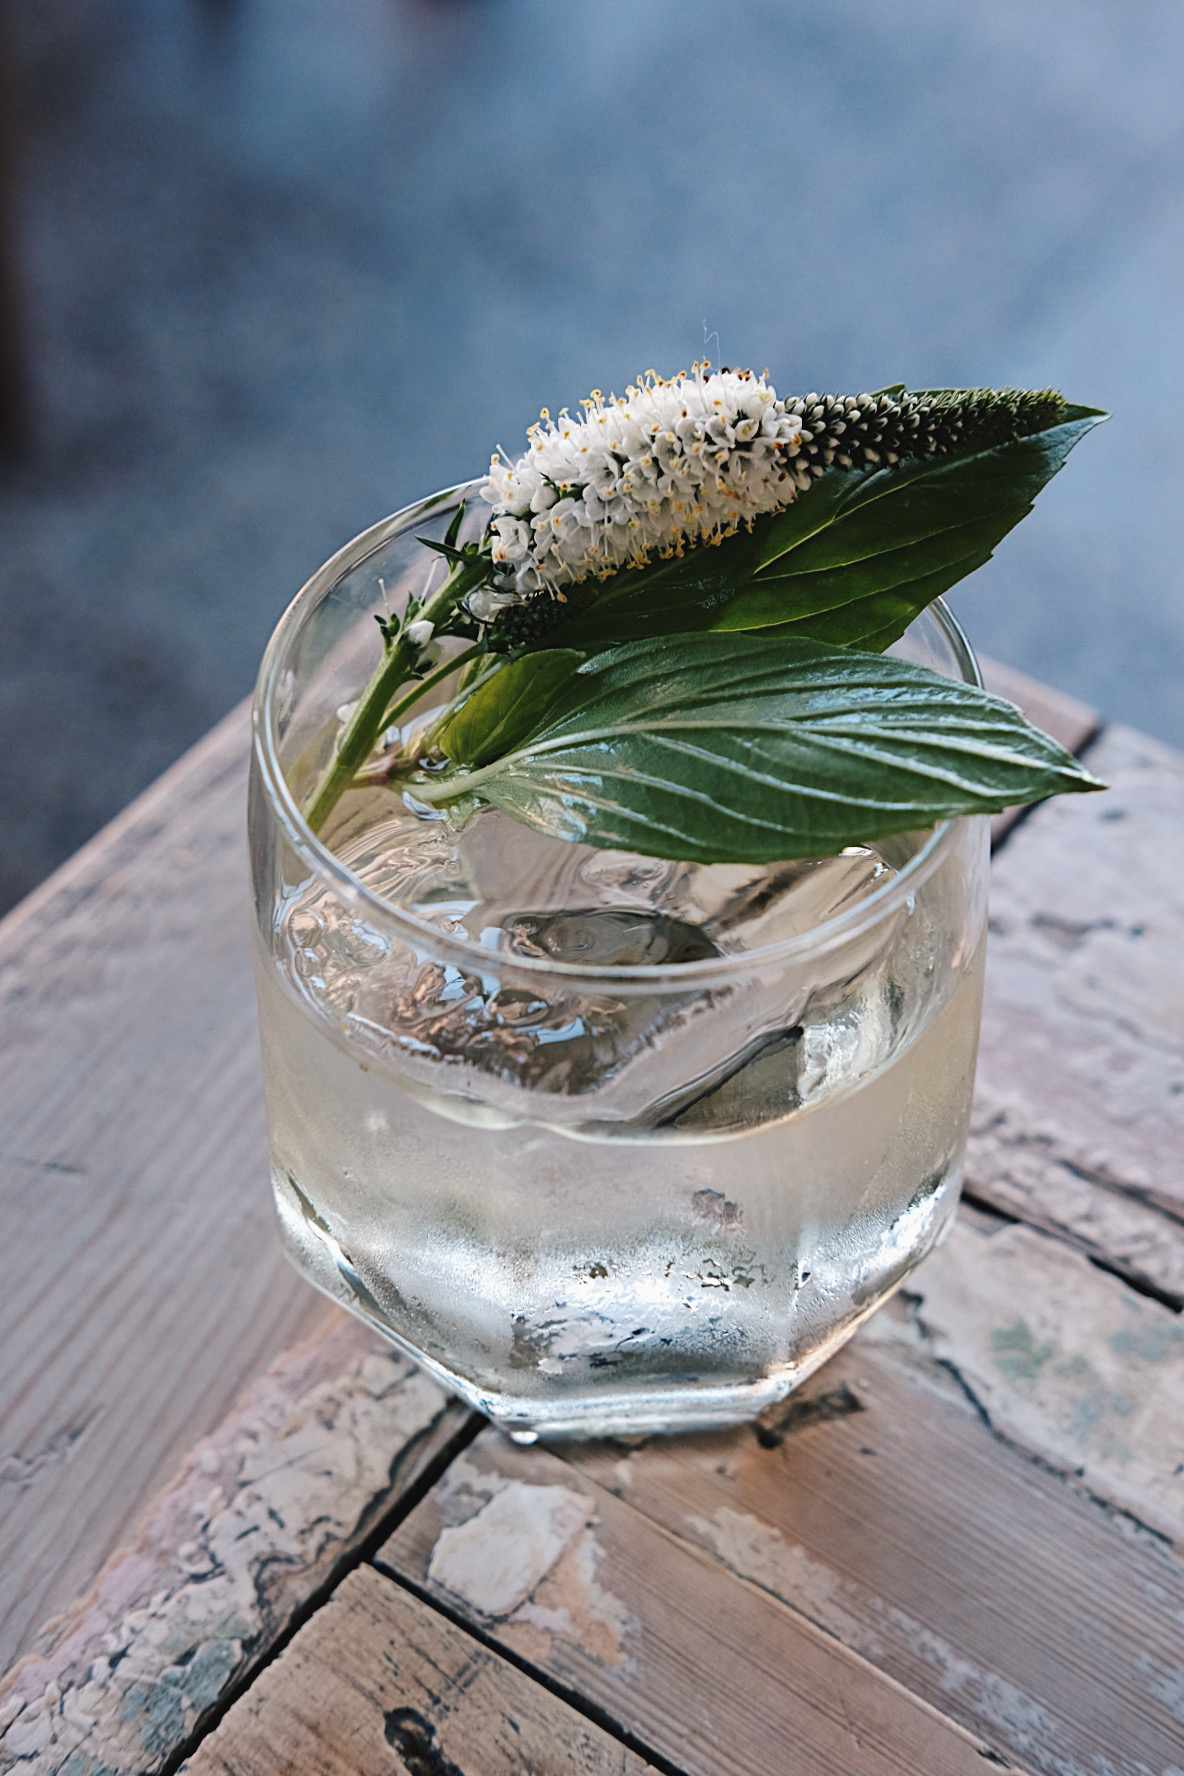 alcohol, signature cocktail, drink, glass, ice, beverage, bar, edible flowers, highball glass